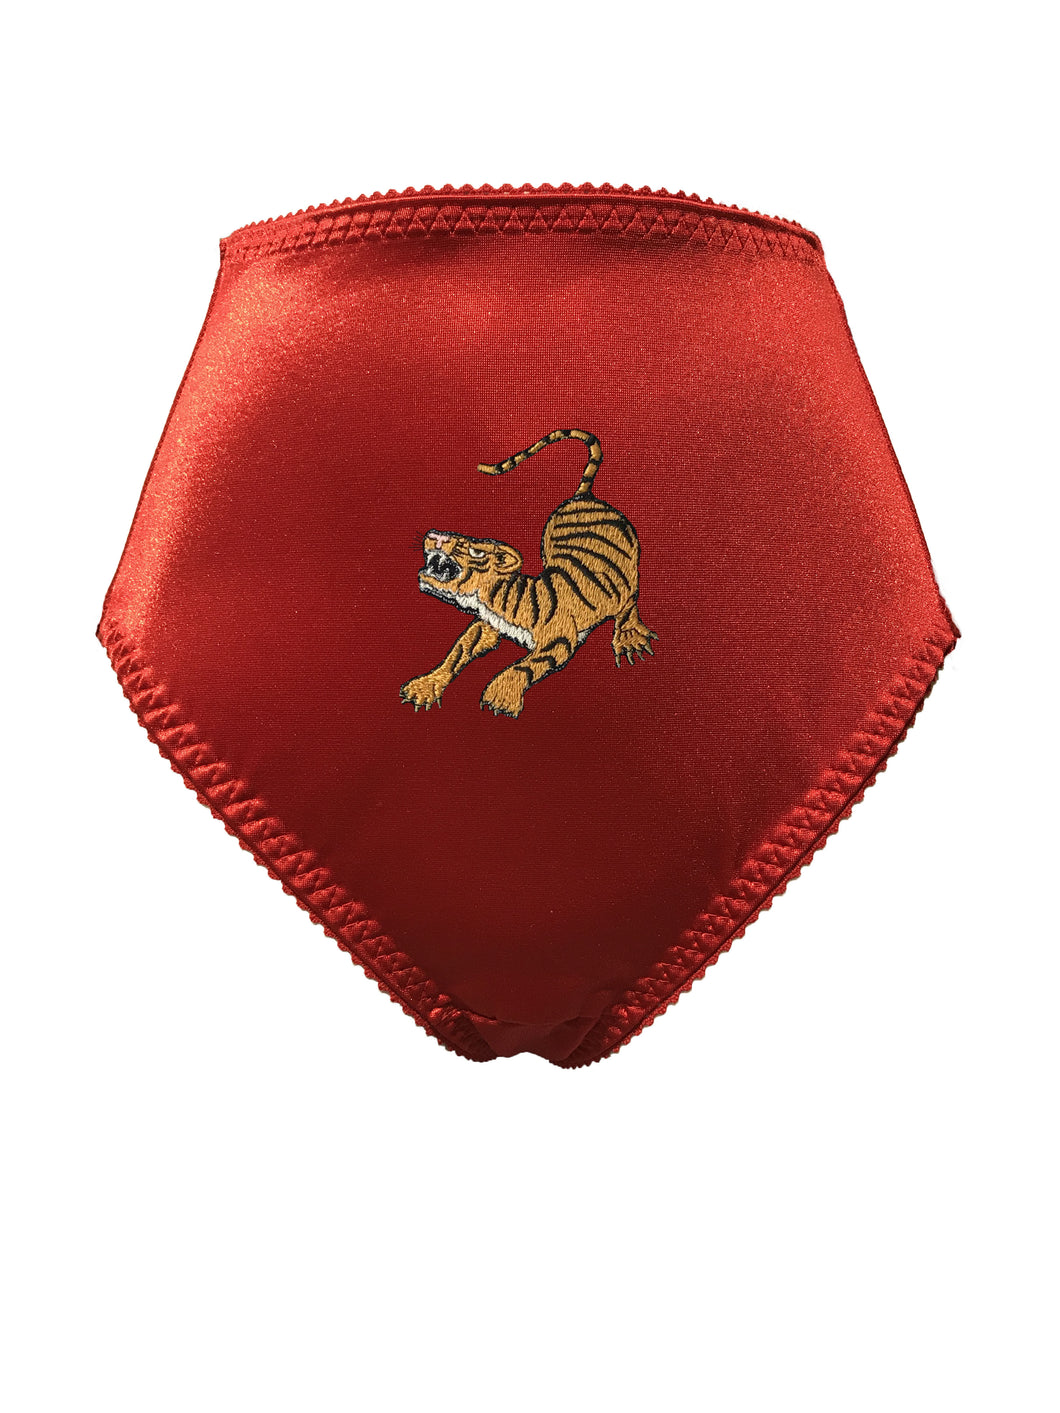 Man Eater Embroidered Panty - Cherry Red